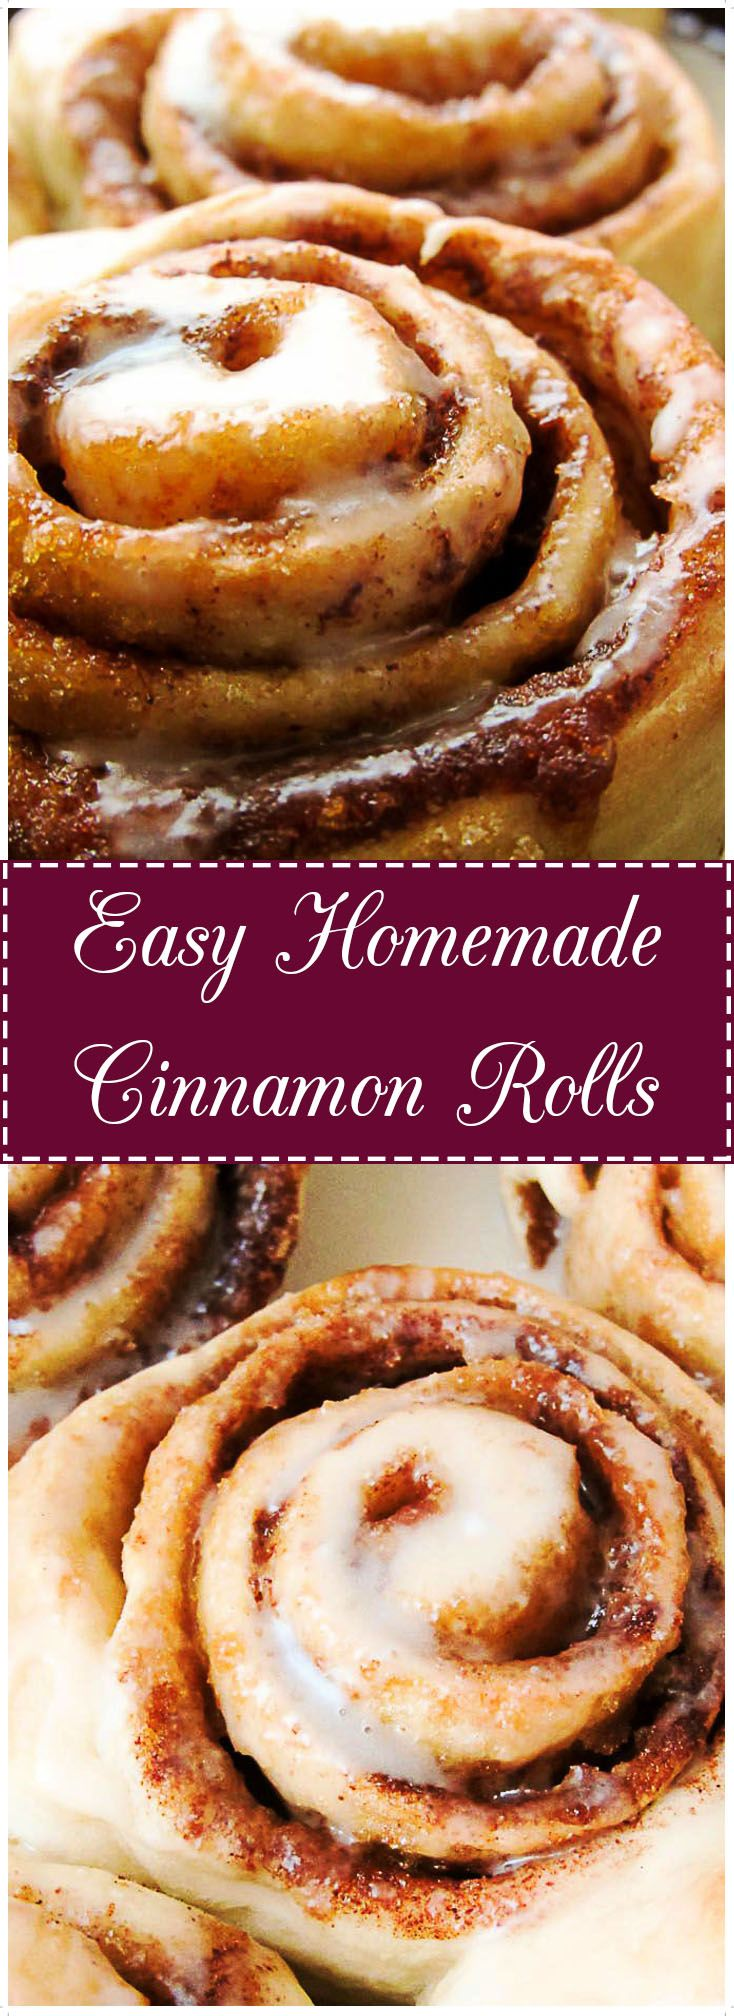 Cinnamon And Brown Sugar Come Together In This Soft Warm Gooey Breakfast Favorite